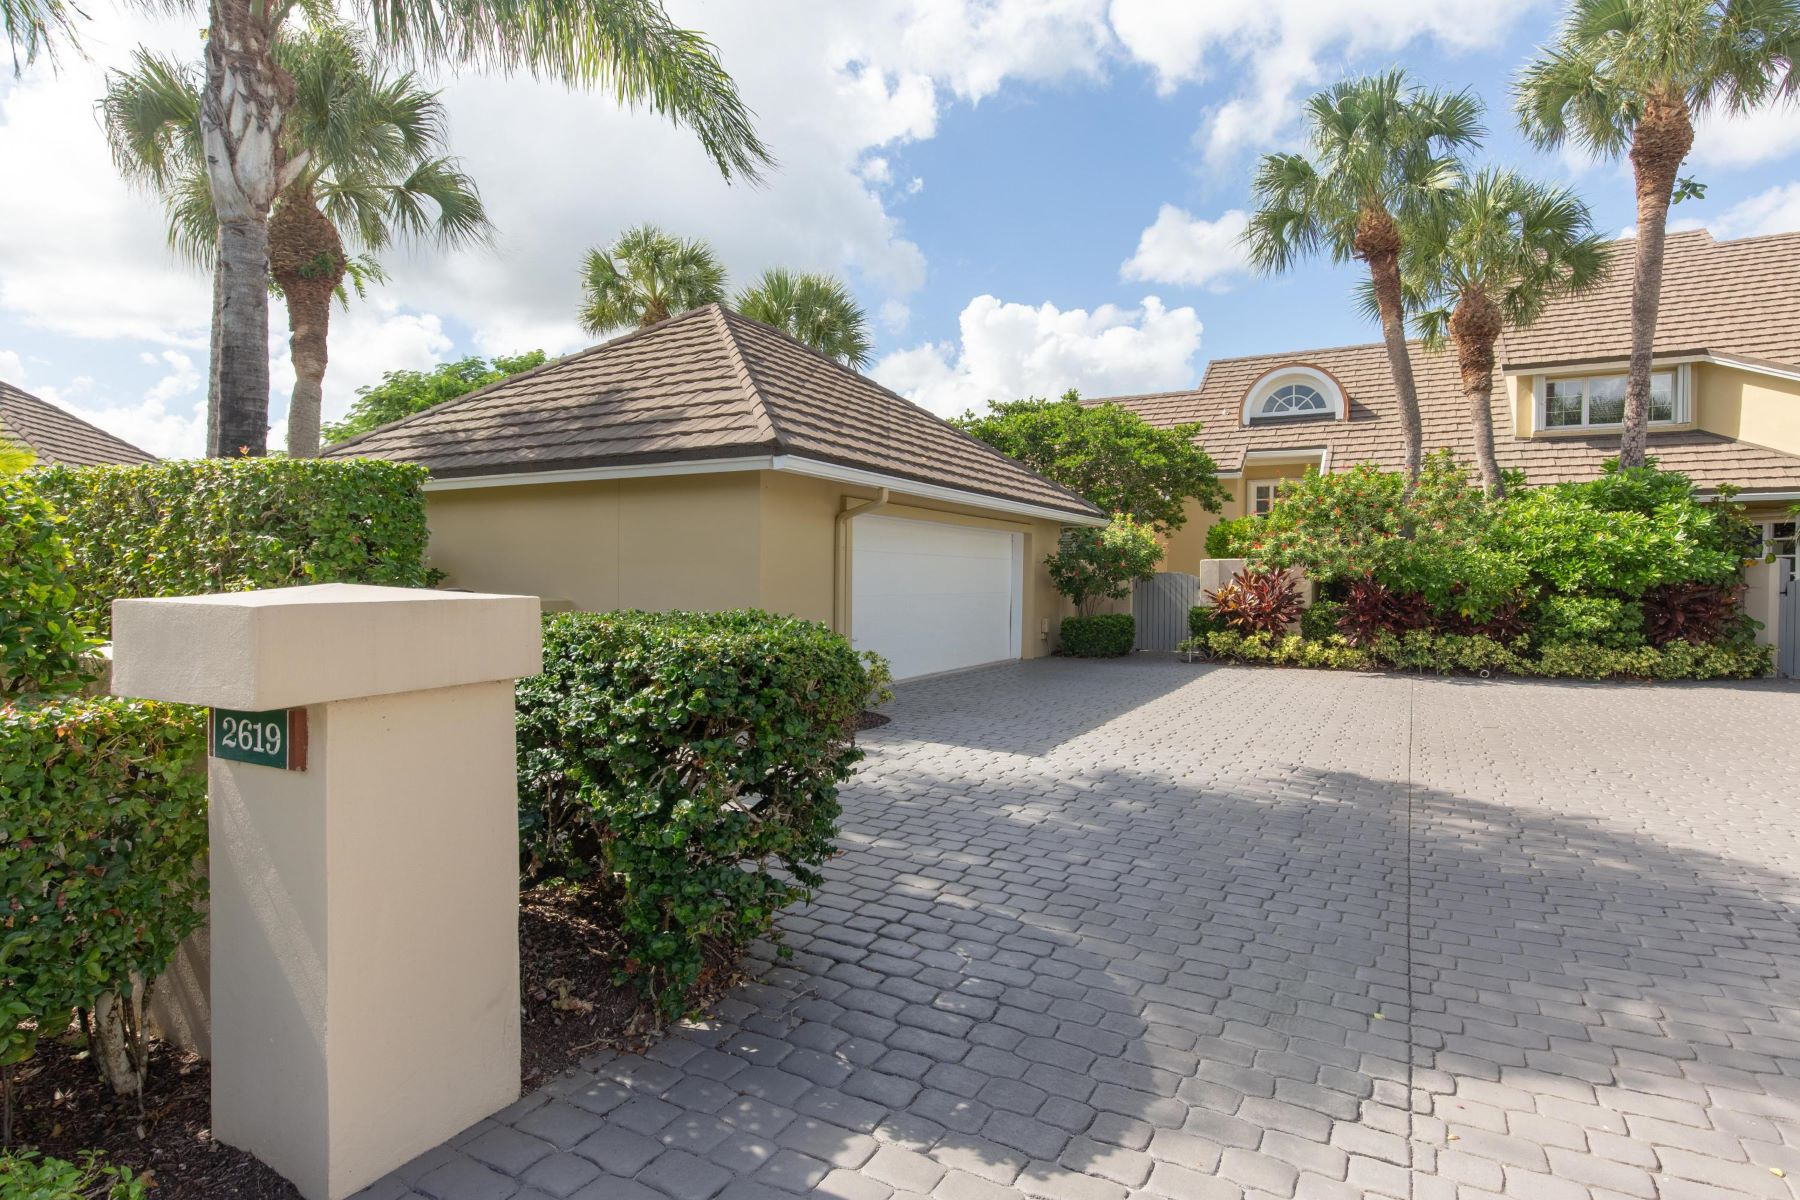 townhouses for Sale at 2619 Muirfield Court, Other, FL Other Areas, Florida 00000 United States